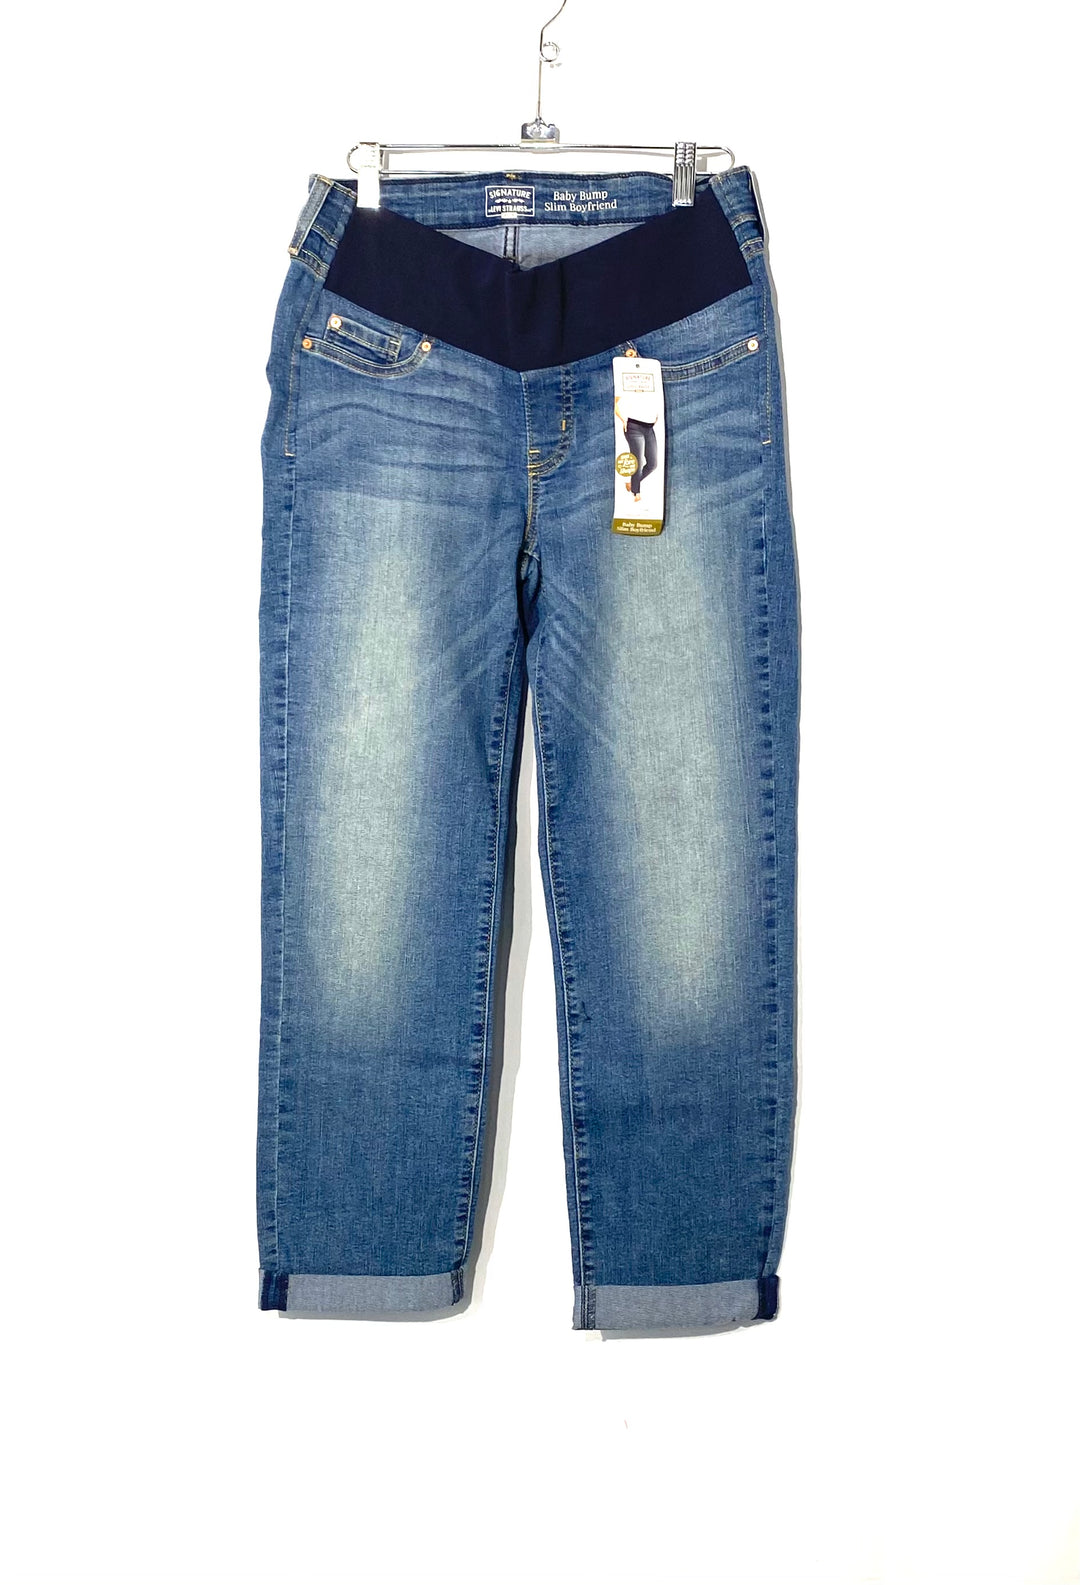 Primary Photo - BRAND: LEVIS <BR>STYLE: MATERNITY JEANS <BR>COLOR: DENIM <BR>SIZE: S <BR>SKU: 262-26275-71619<BR>MATERNITY FINAL SALE